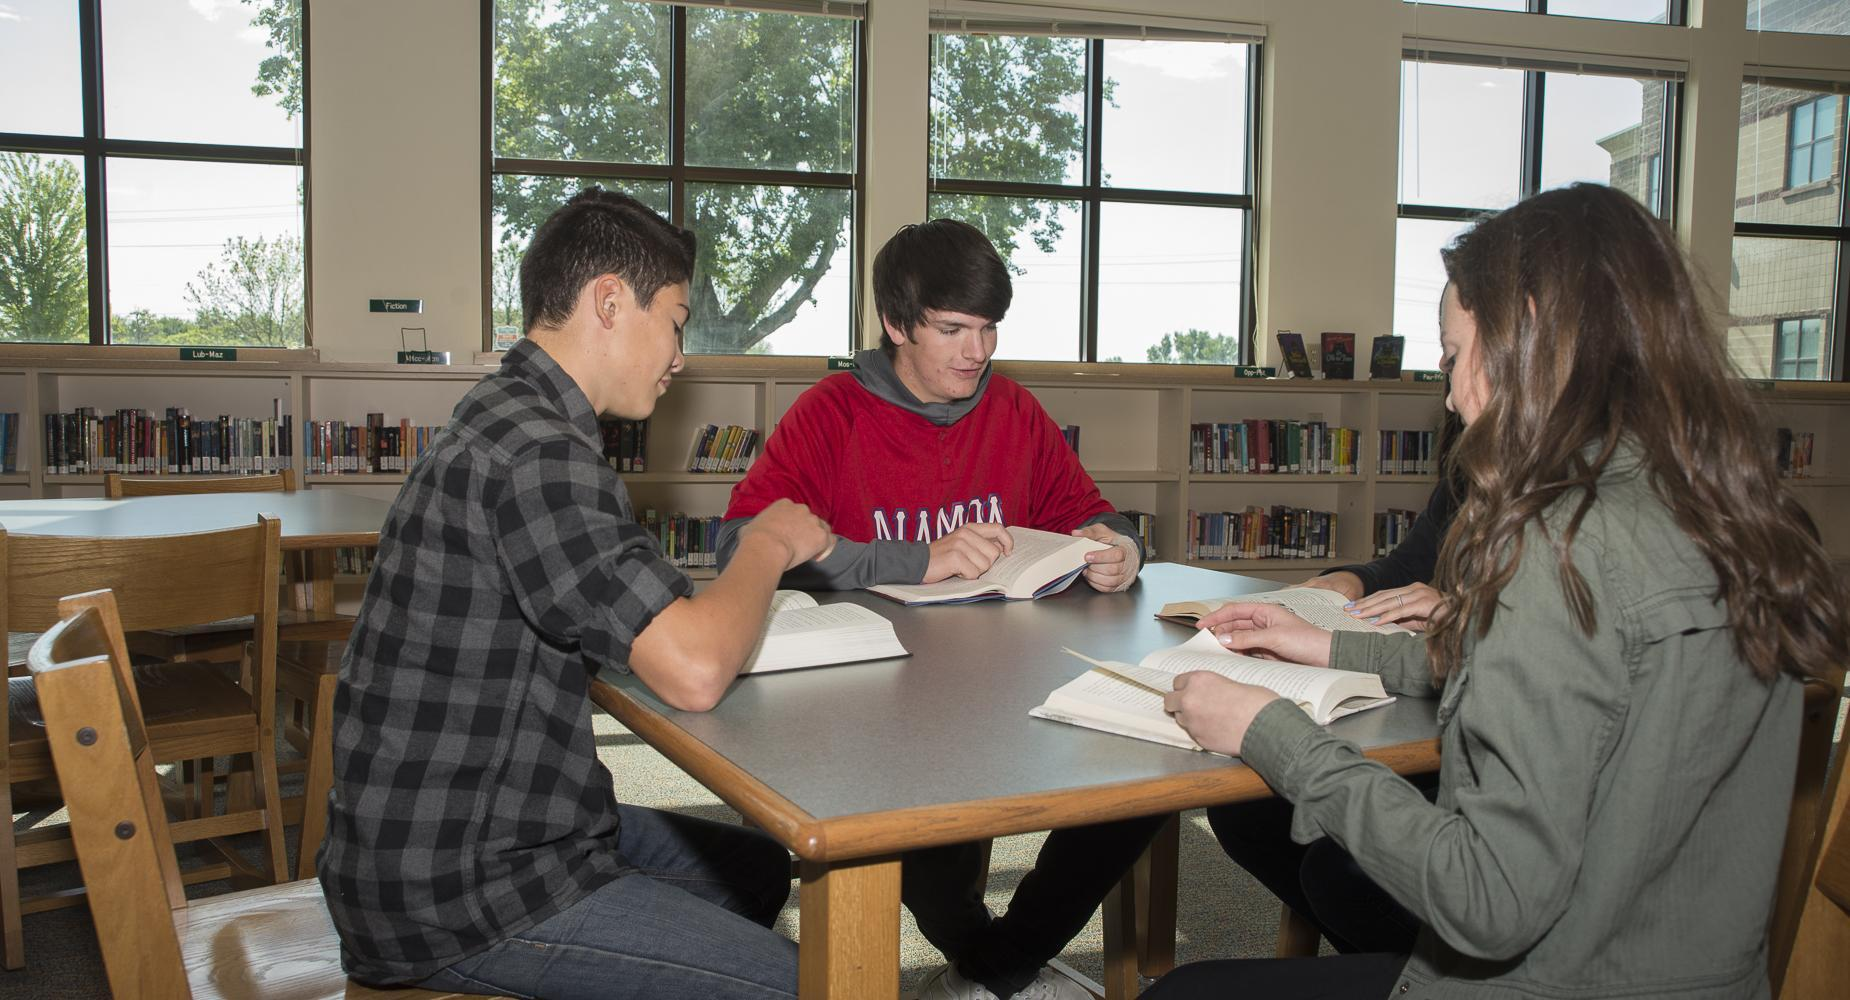 Three students study at a table in the library